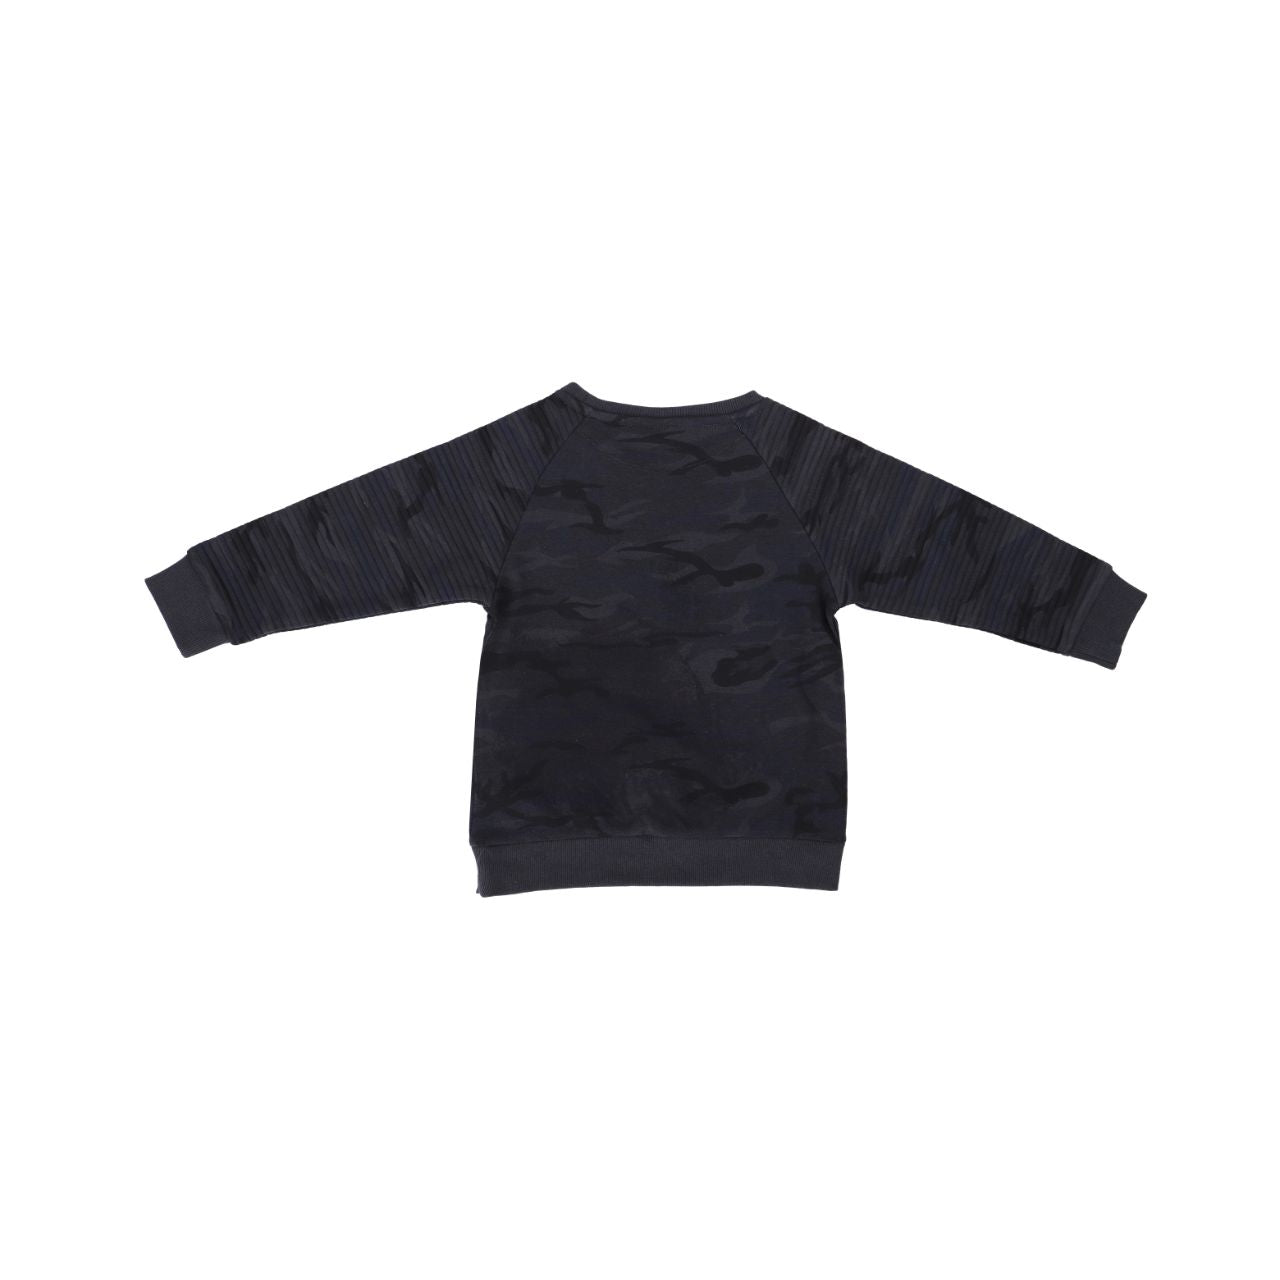 Bradley Crew Neck Sweatshirt Toddler